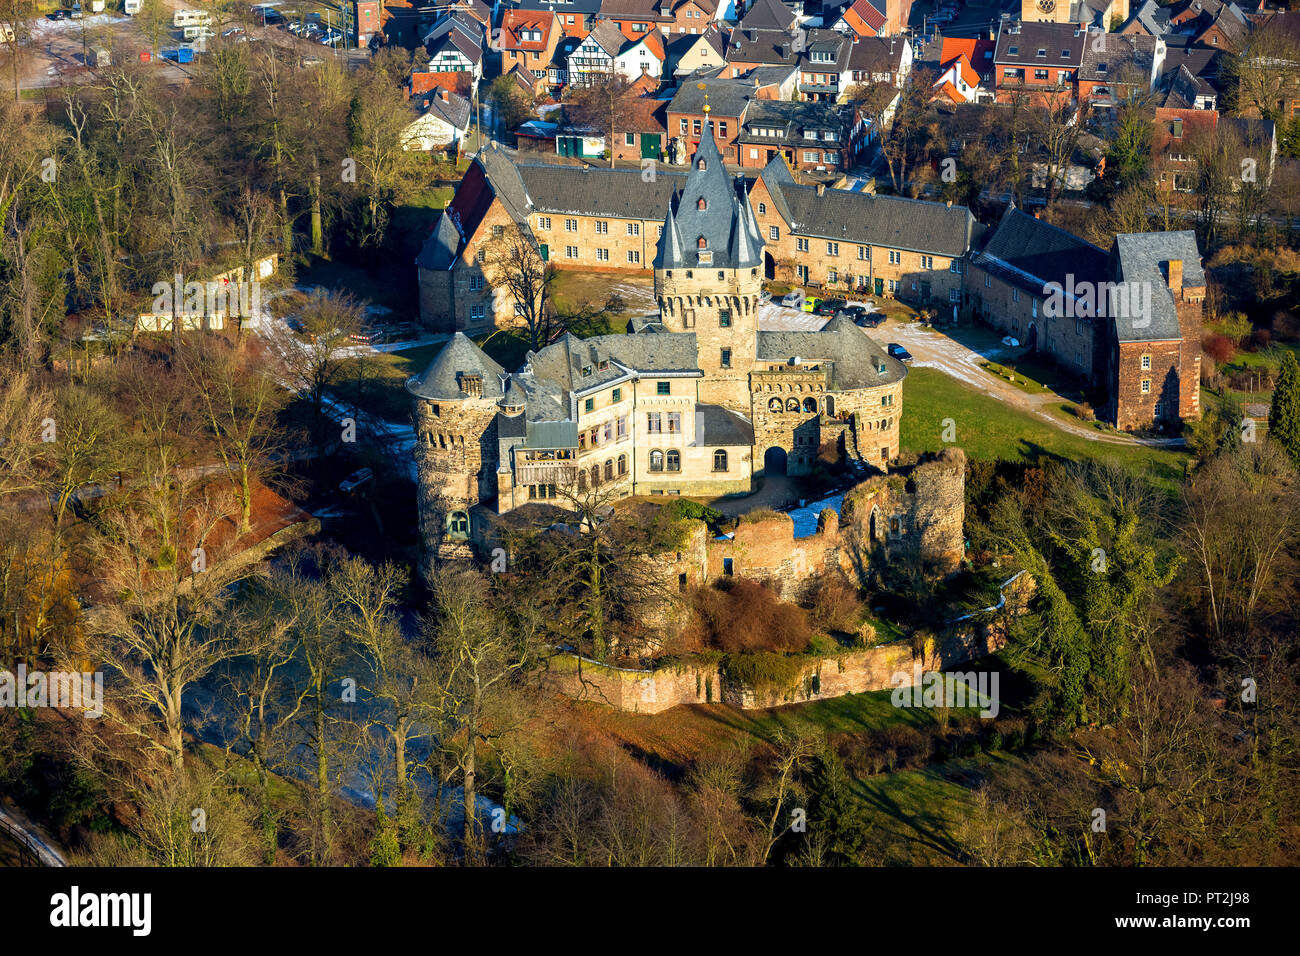 Hülchrath Castle is a former country castle from the Electorate of Cologne in Grevenbroich district Hülchrath, moated castle, neo-Gothic style, Grevenbroich, Rhineland, North Rhine-Westphalia, Germany - Stock Image